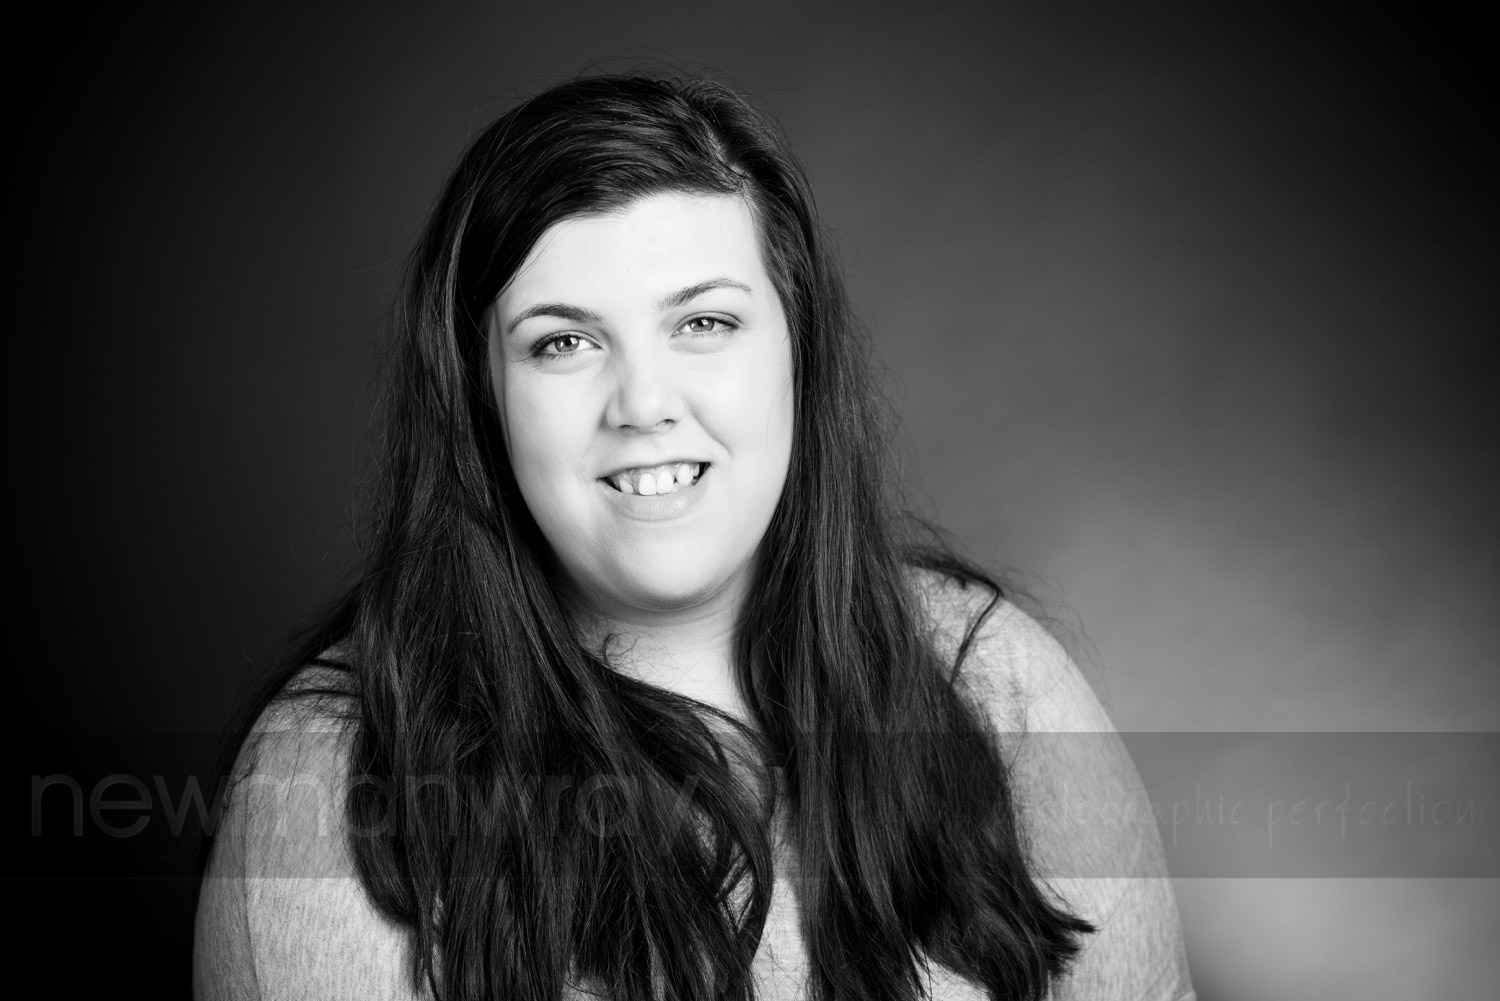 tadcaster_portrait_photography-35